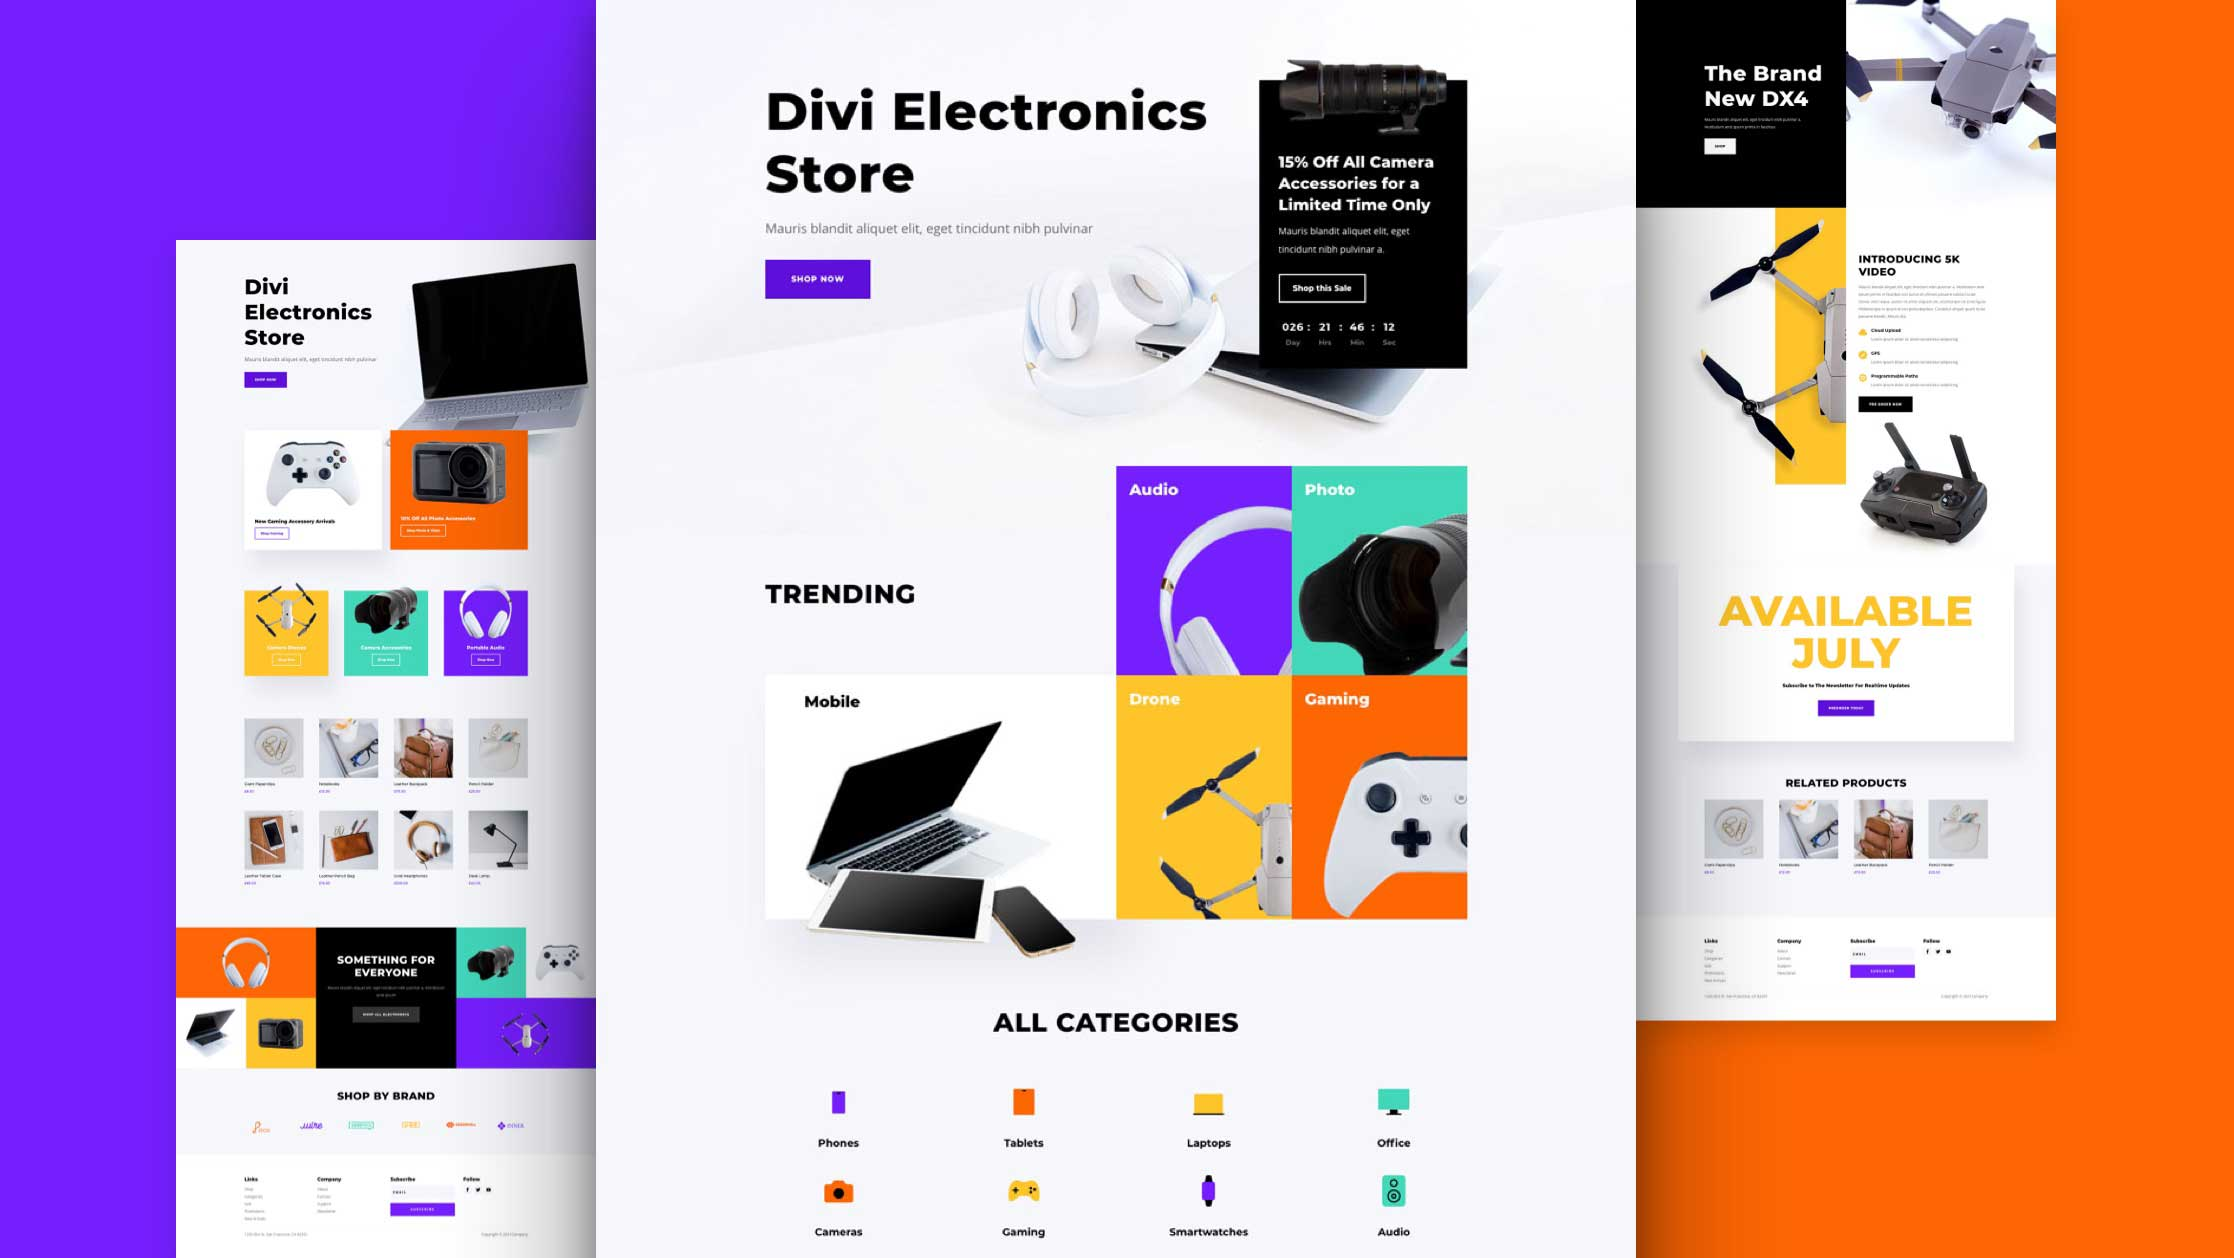 Get a FREE Electronics Store Layout Pack for Divi